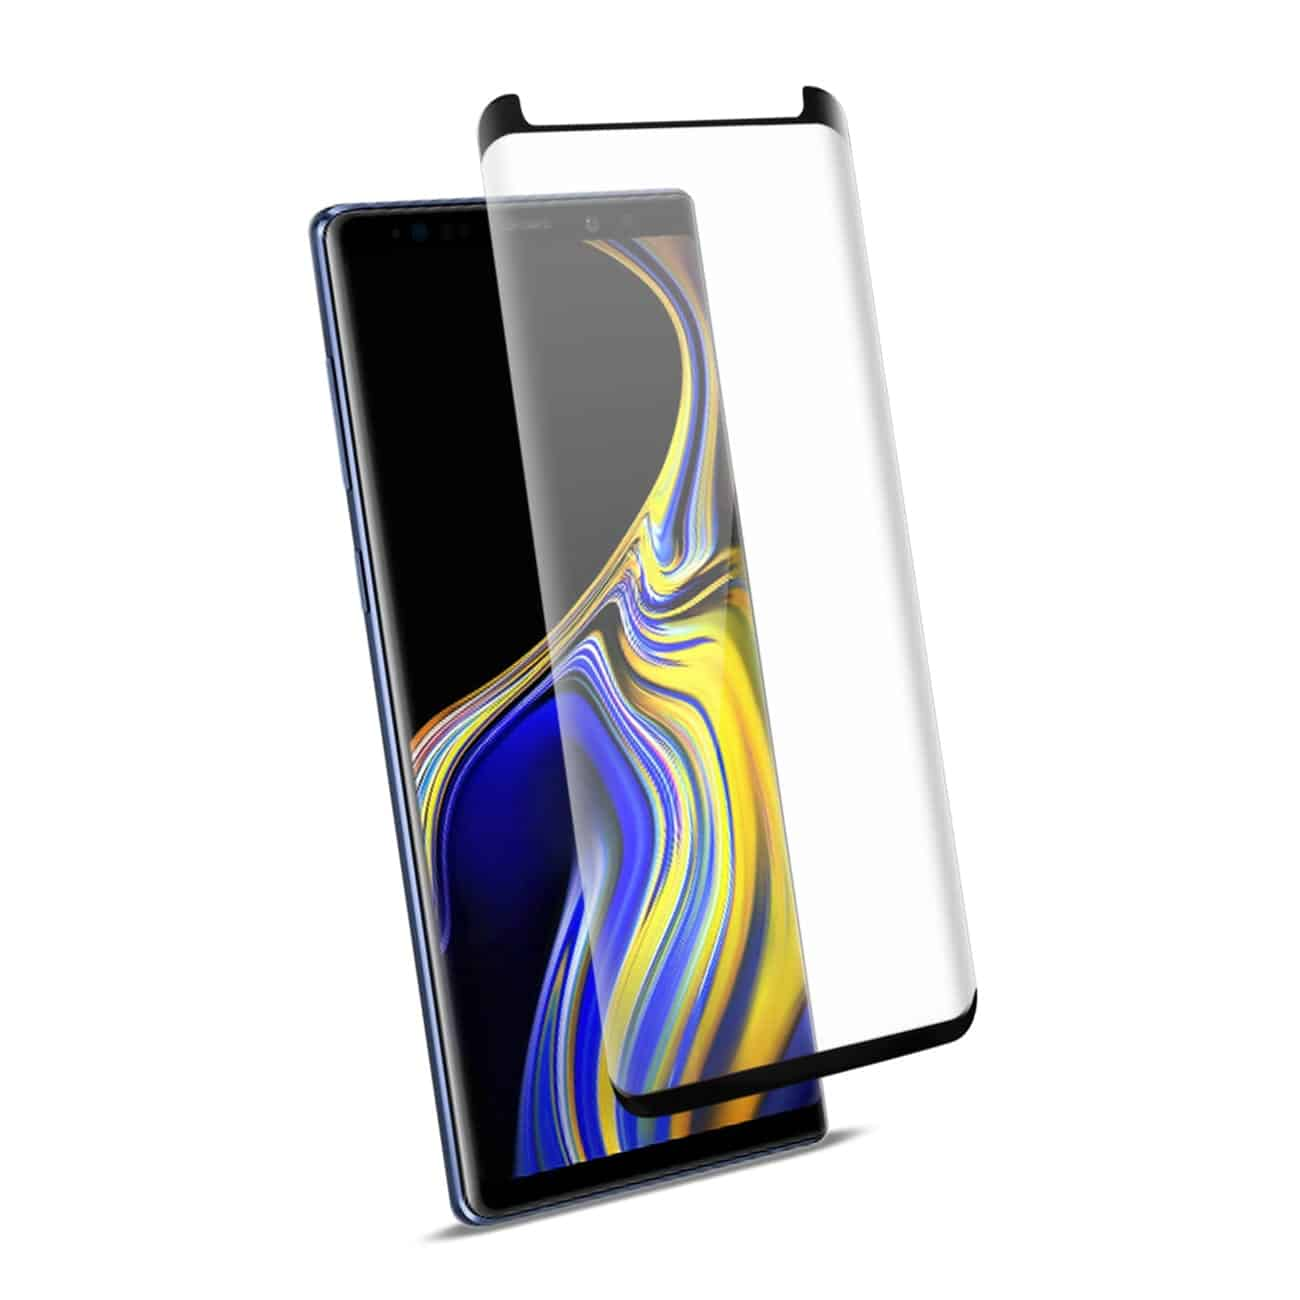 Samsung Galaxy Note 9 3D Curved Full Coverage Tempered Glass Screen Protector In Black